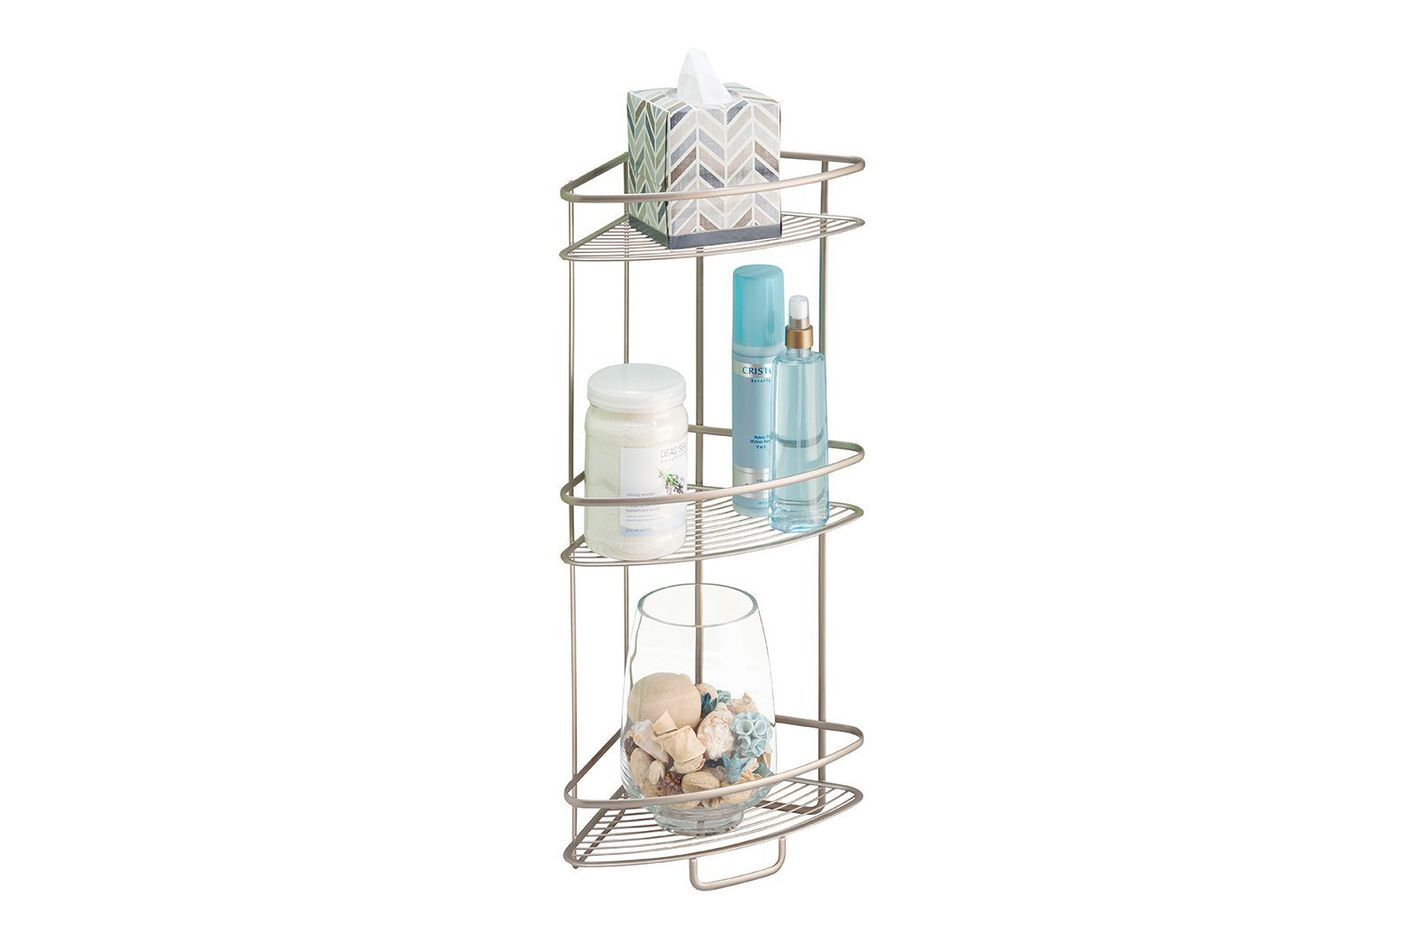 mDesign Free Standing Bathroom or Shower Corner Storage